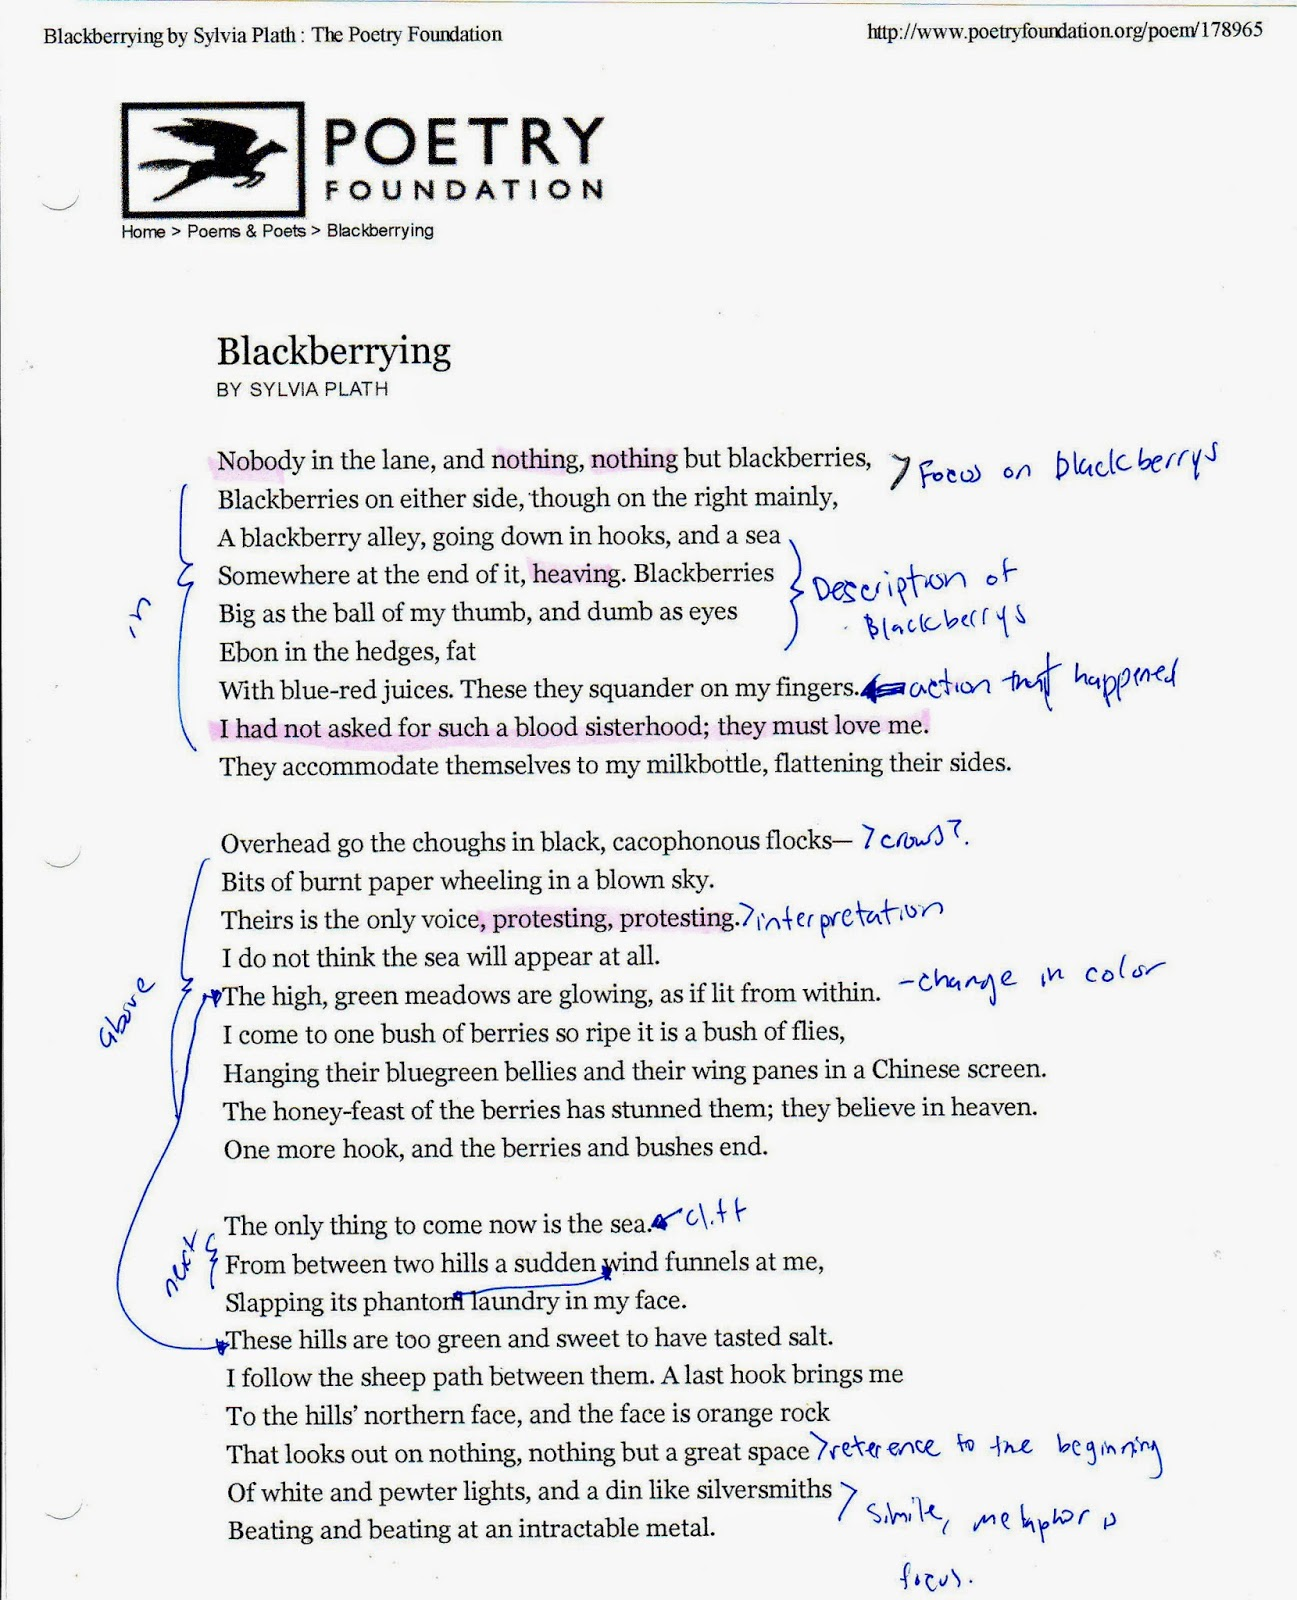 analysis of sylvia plath poems Free essay: metaphors analysis in sylvia plath's poem in sylvia plath's poem, metaphors, she uses striking imagery to explore her ambivalent attitudes about.